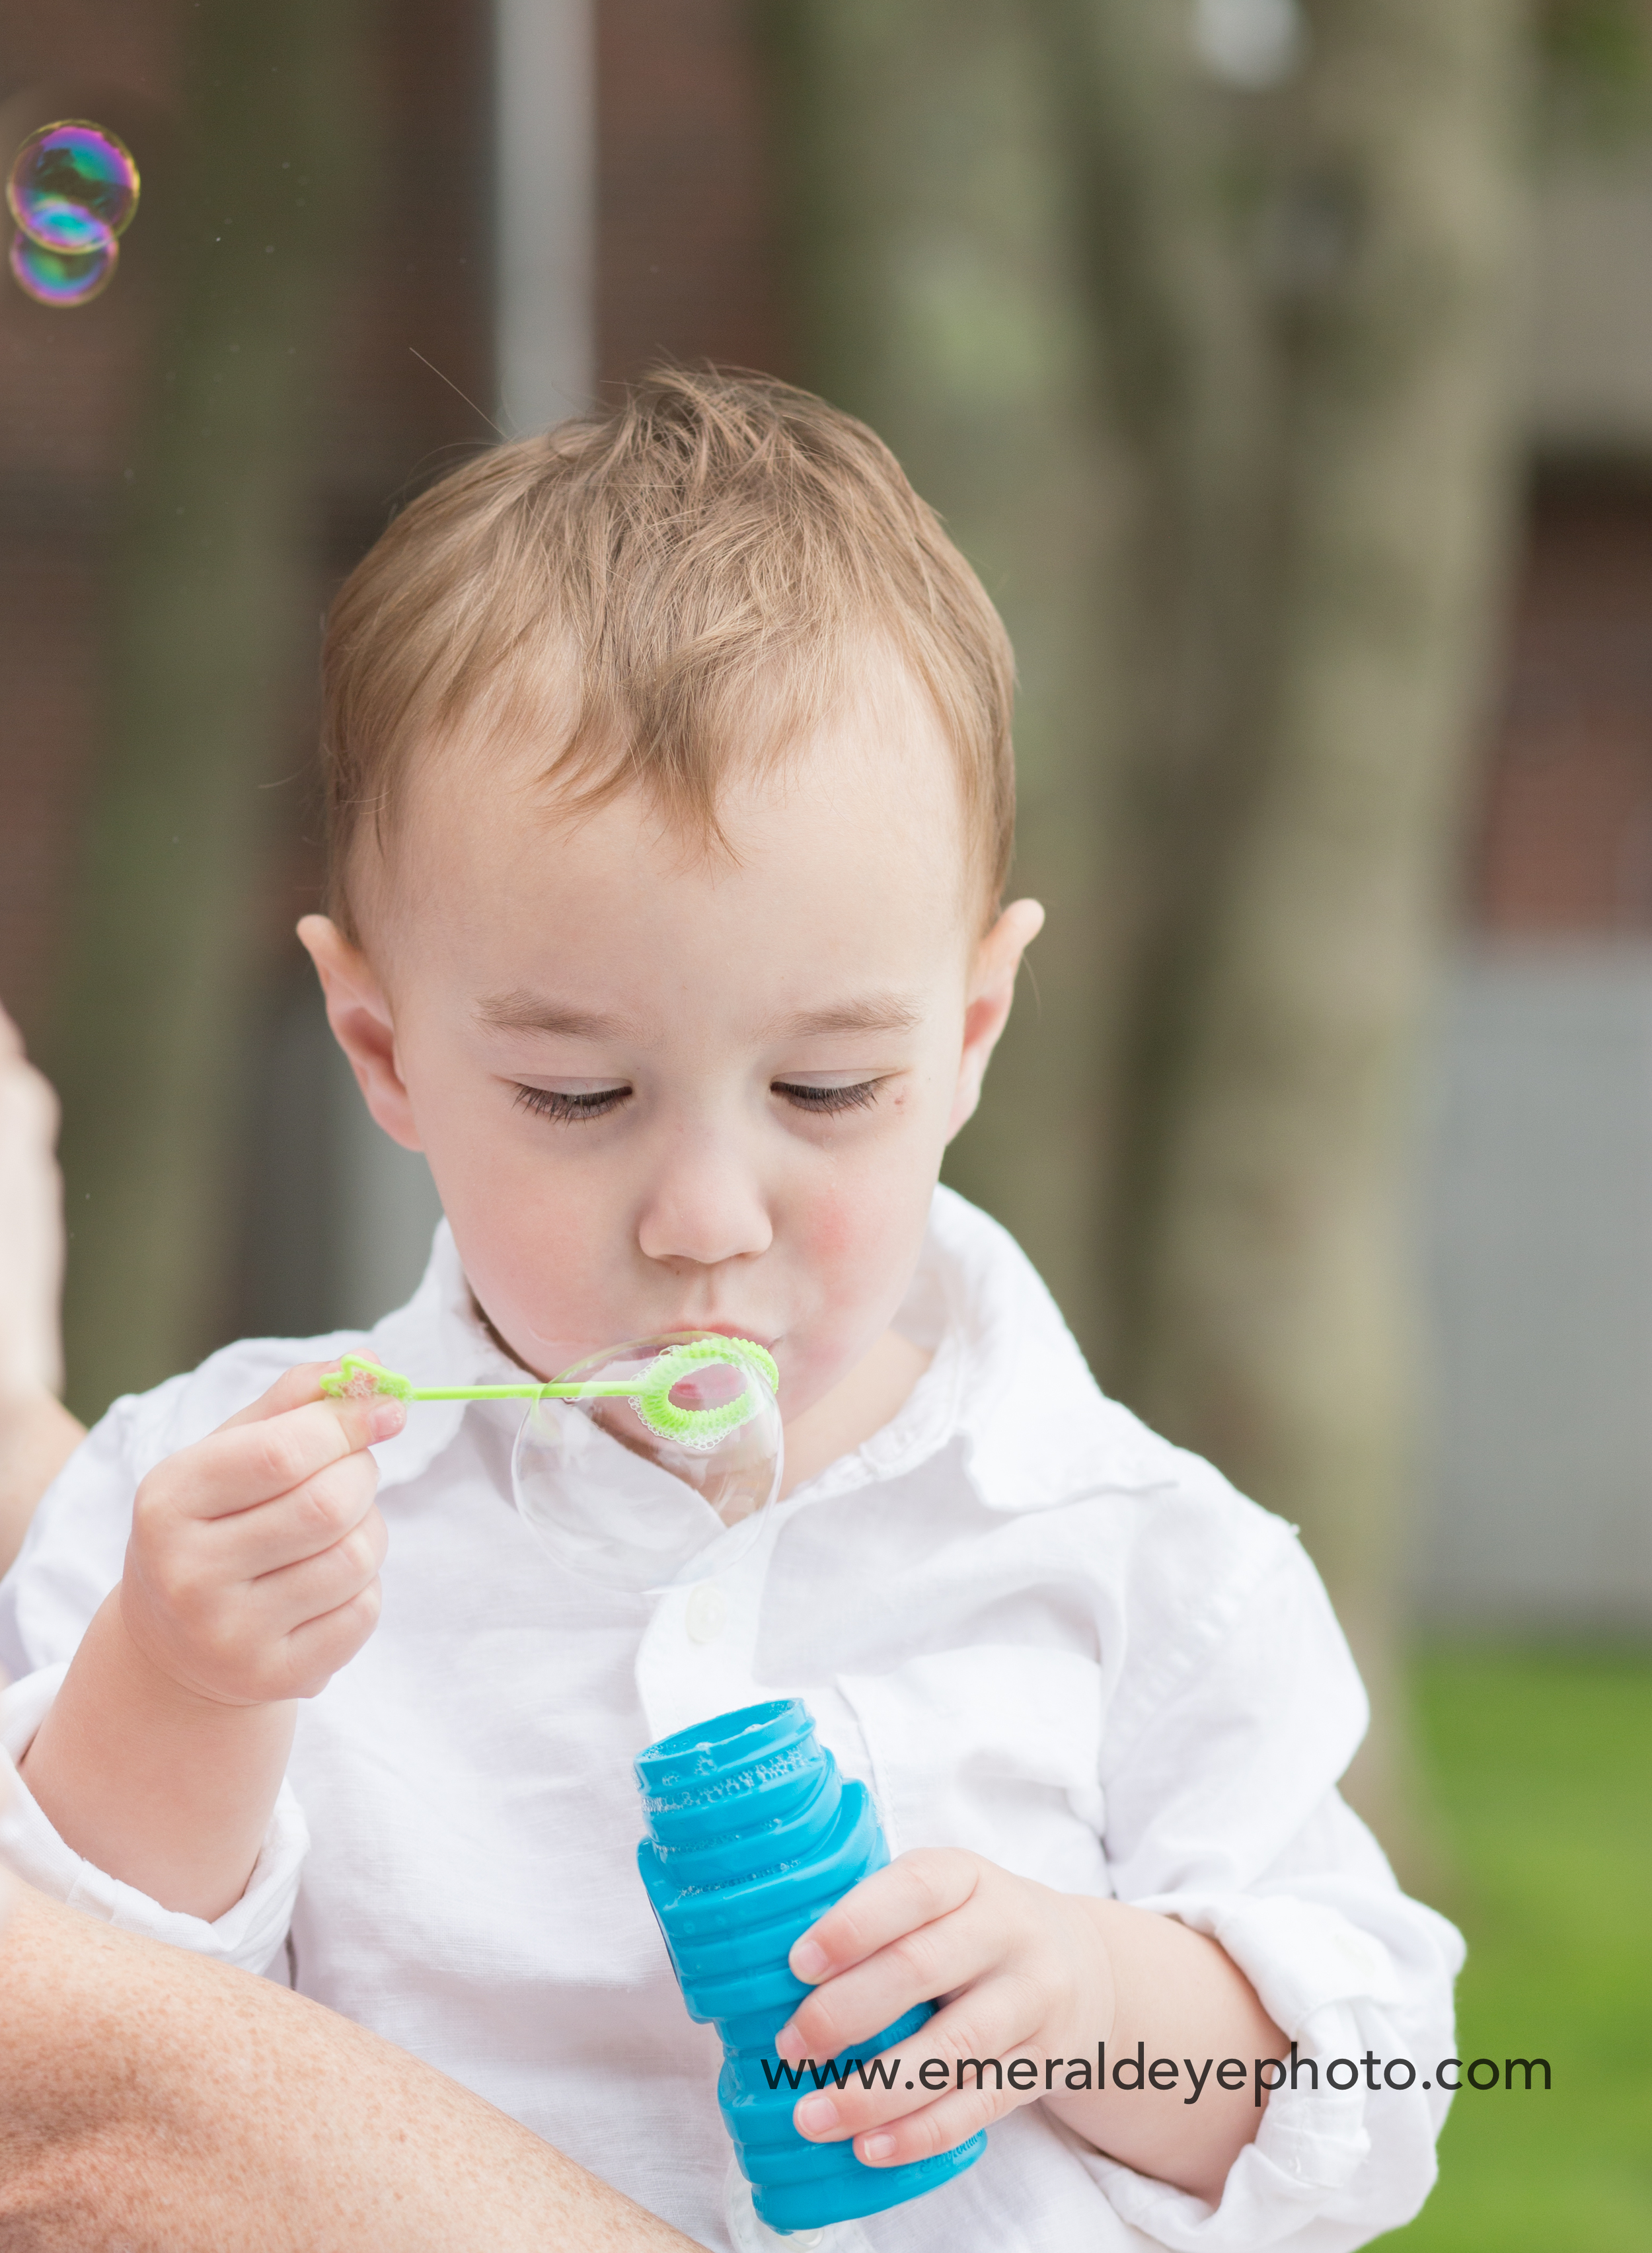 Toddler blows bubbles during family session on Cape Cod Massachusetts